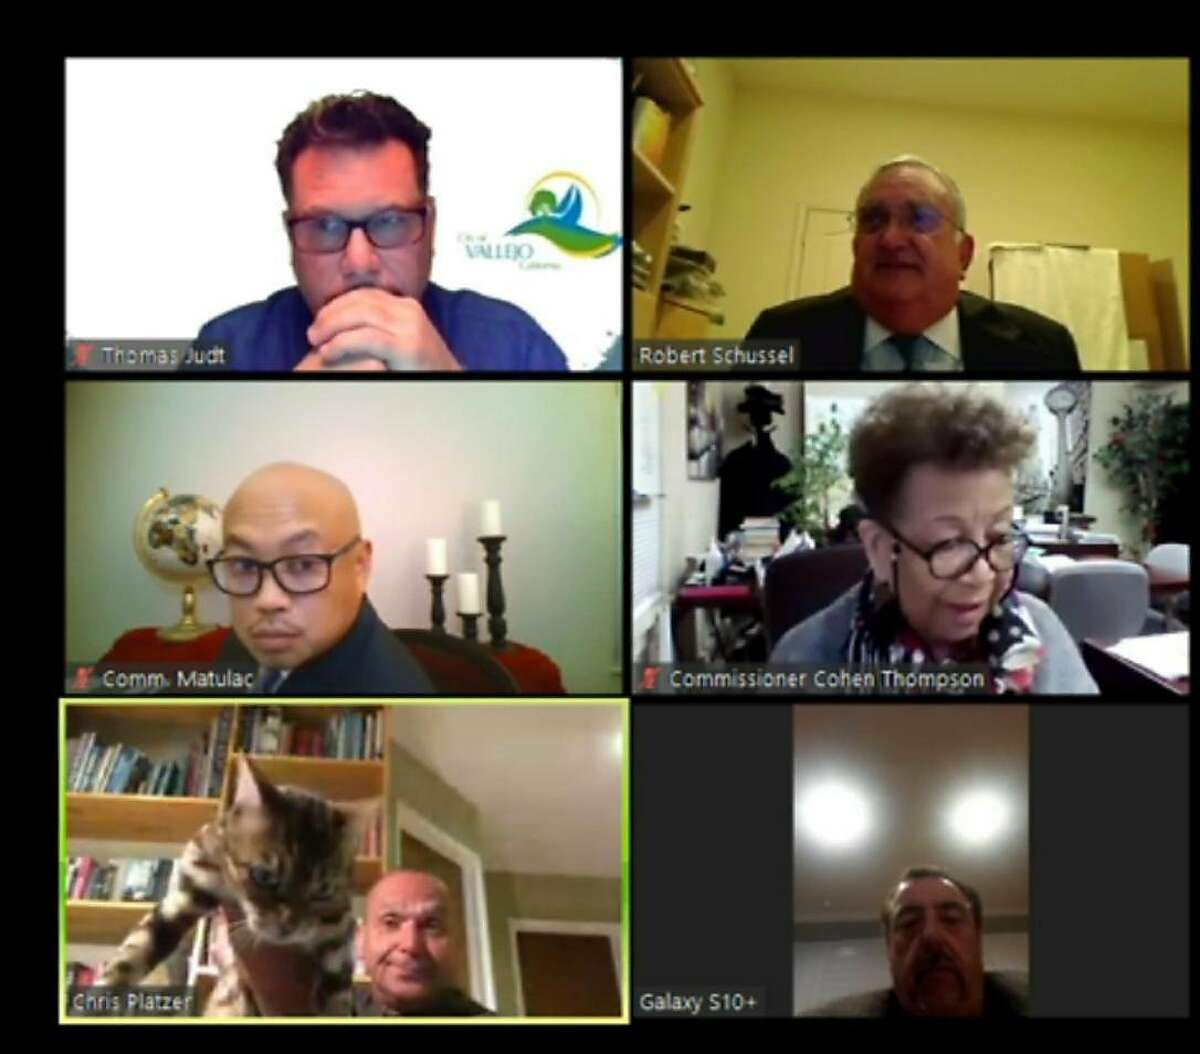 A screengrab from The City of Vallejo website, shows a Zoom video conference of Vallejo Planning Commissioner Chris Platzer throwing his cat during a planning commission meeting on Monday April 20, 2020